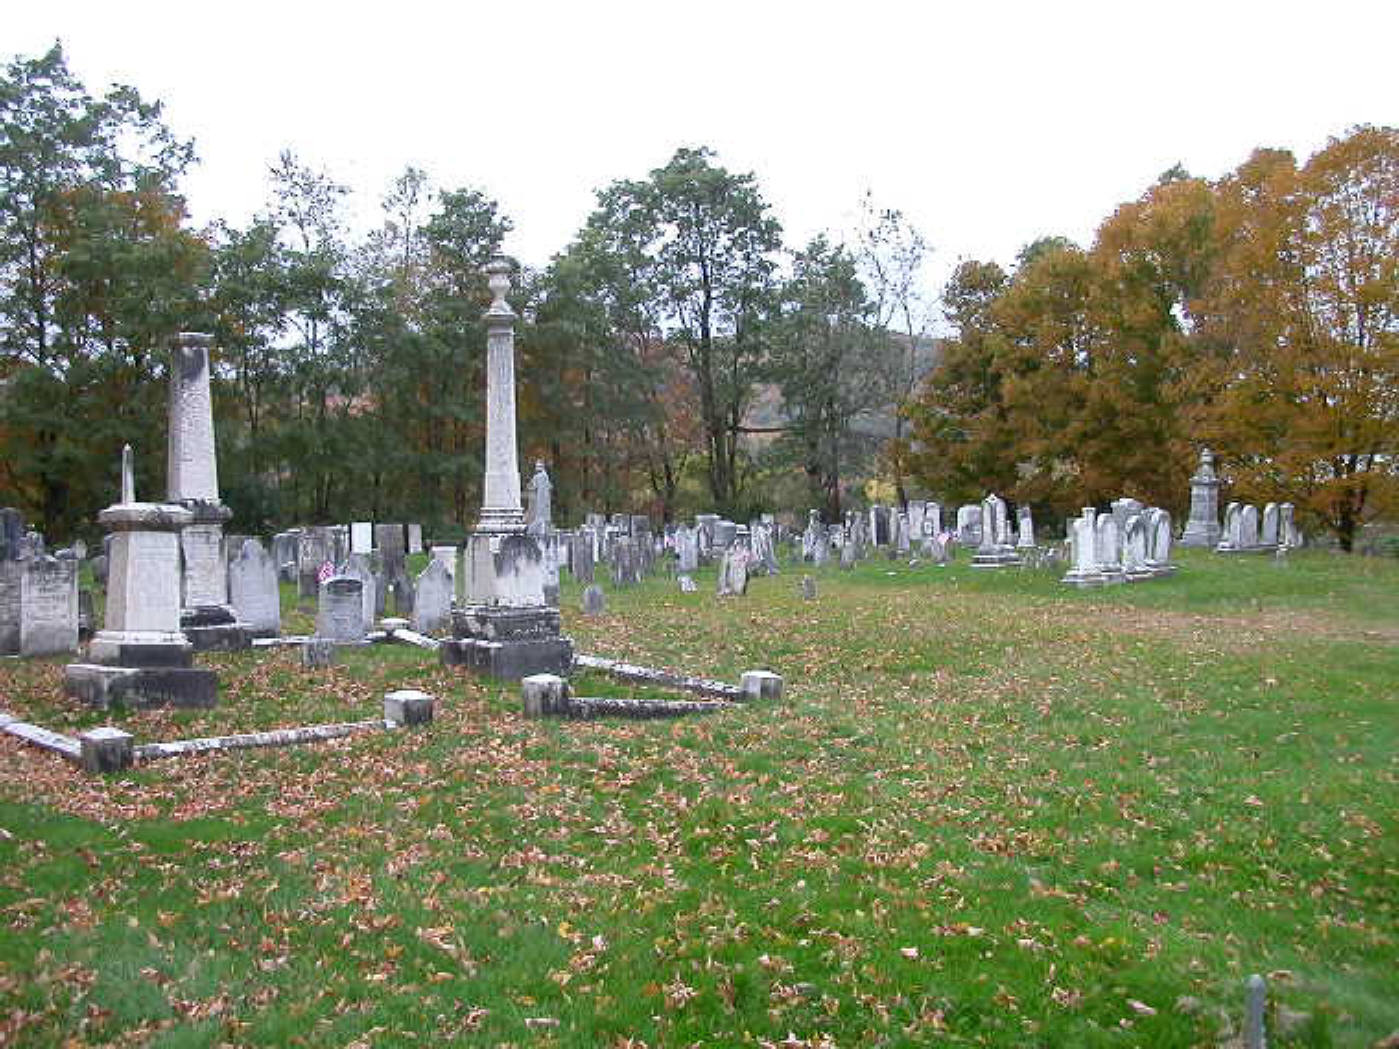 Clarendon Flats Cemetery